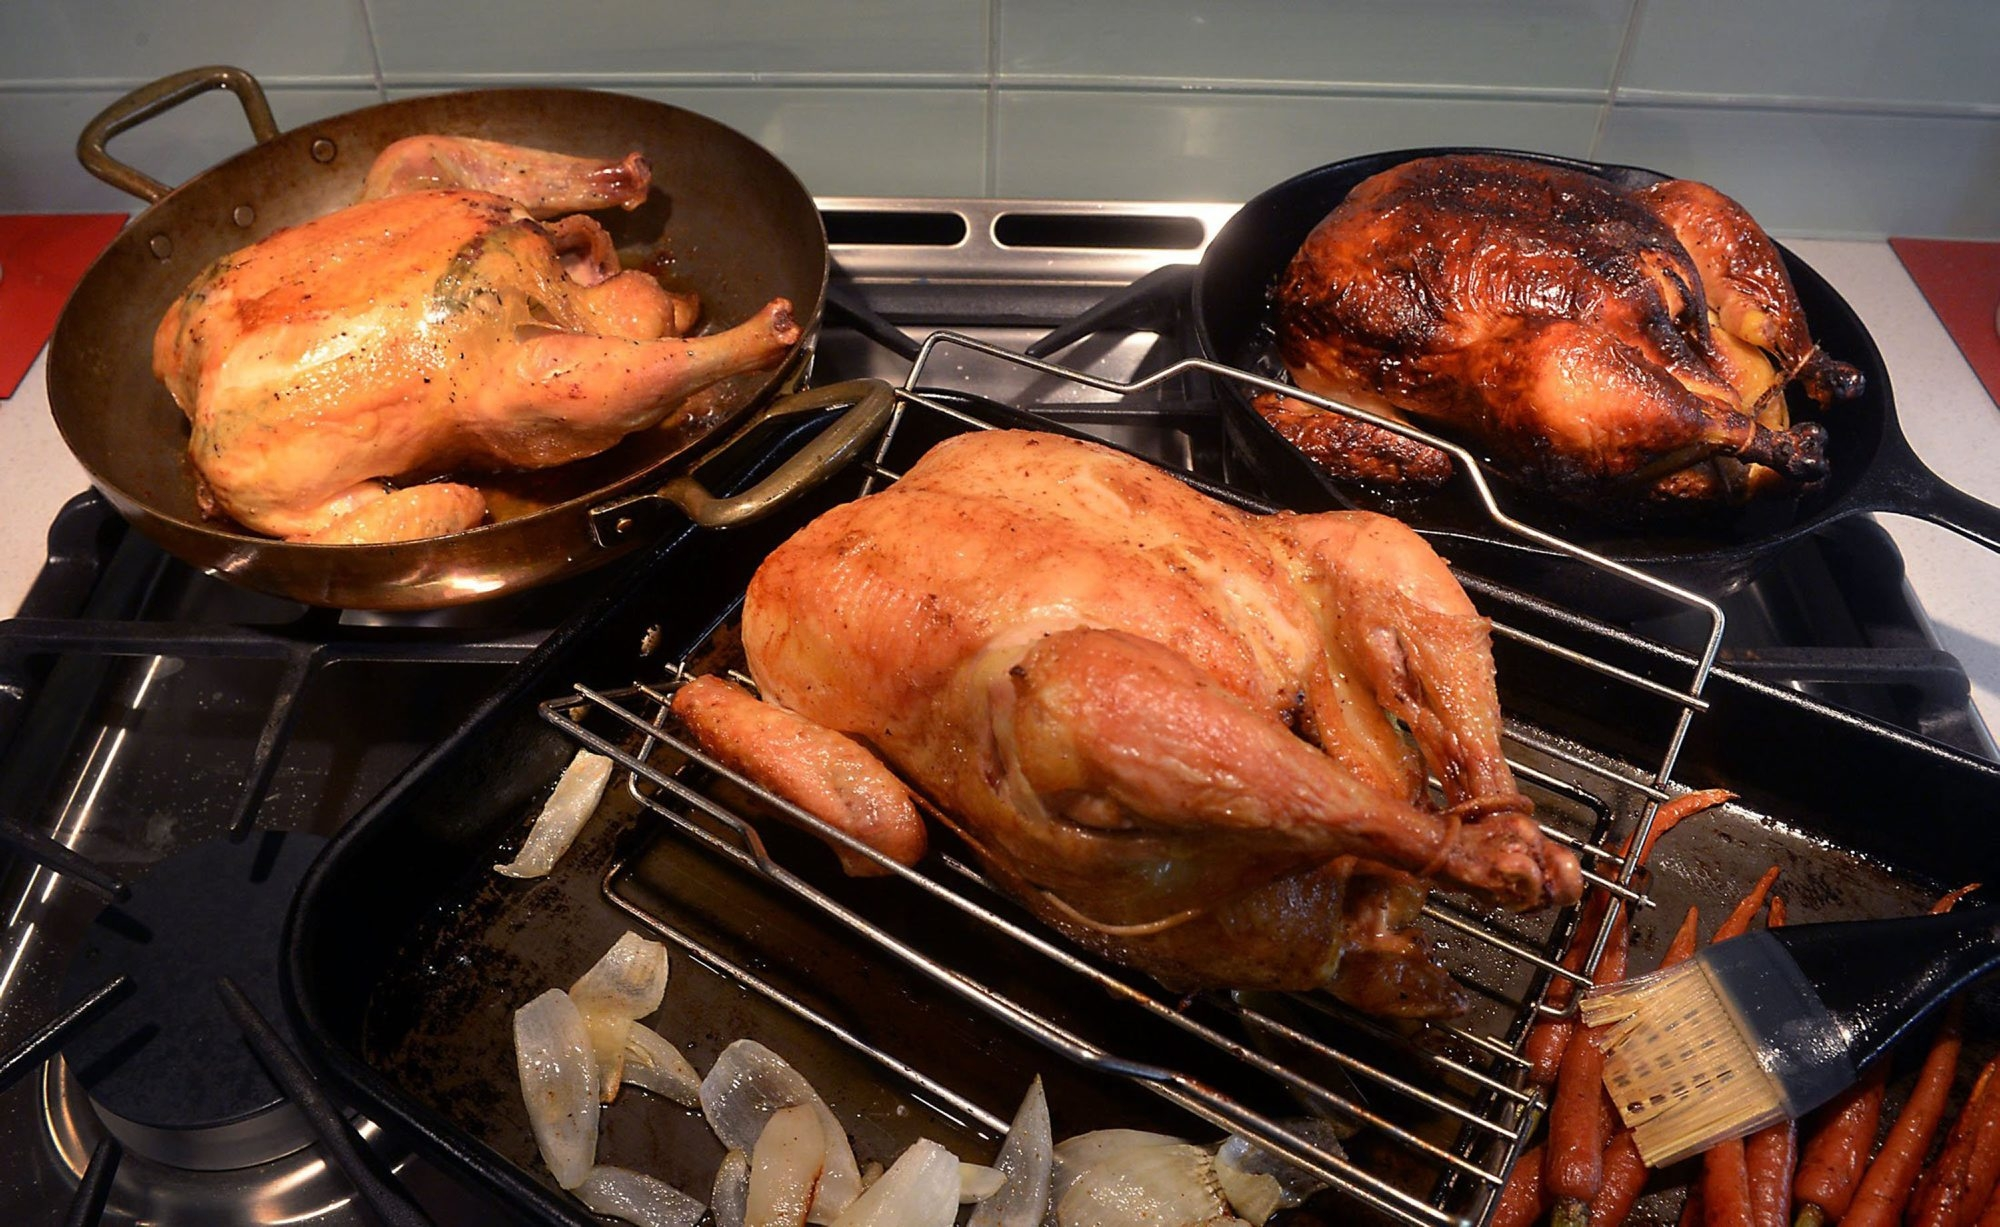 They say you can judge a cook based on just one dish – roast chicken. It's the simplest thing, the little black dress, appropriate for any occasion, easy to dress it up or dress it down. Here, roast chicken recipes adapted from three famous cooks.